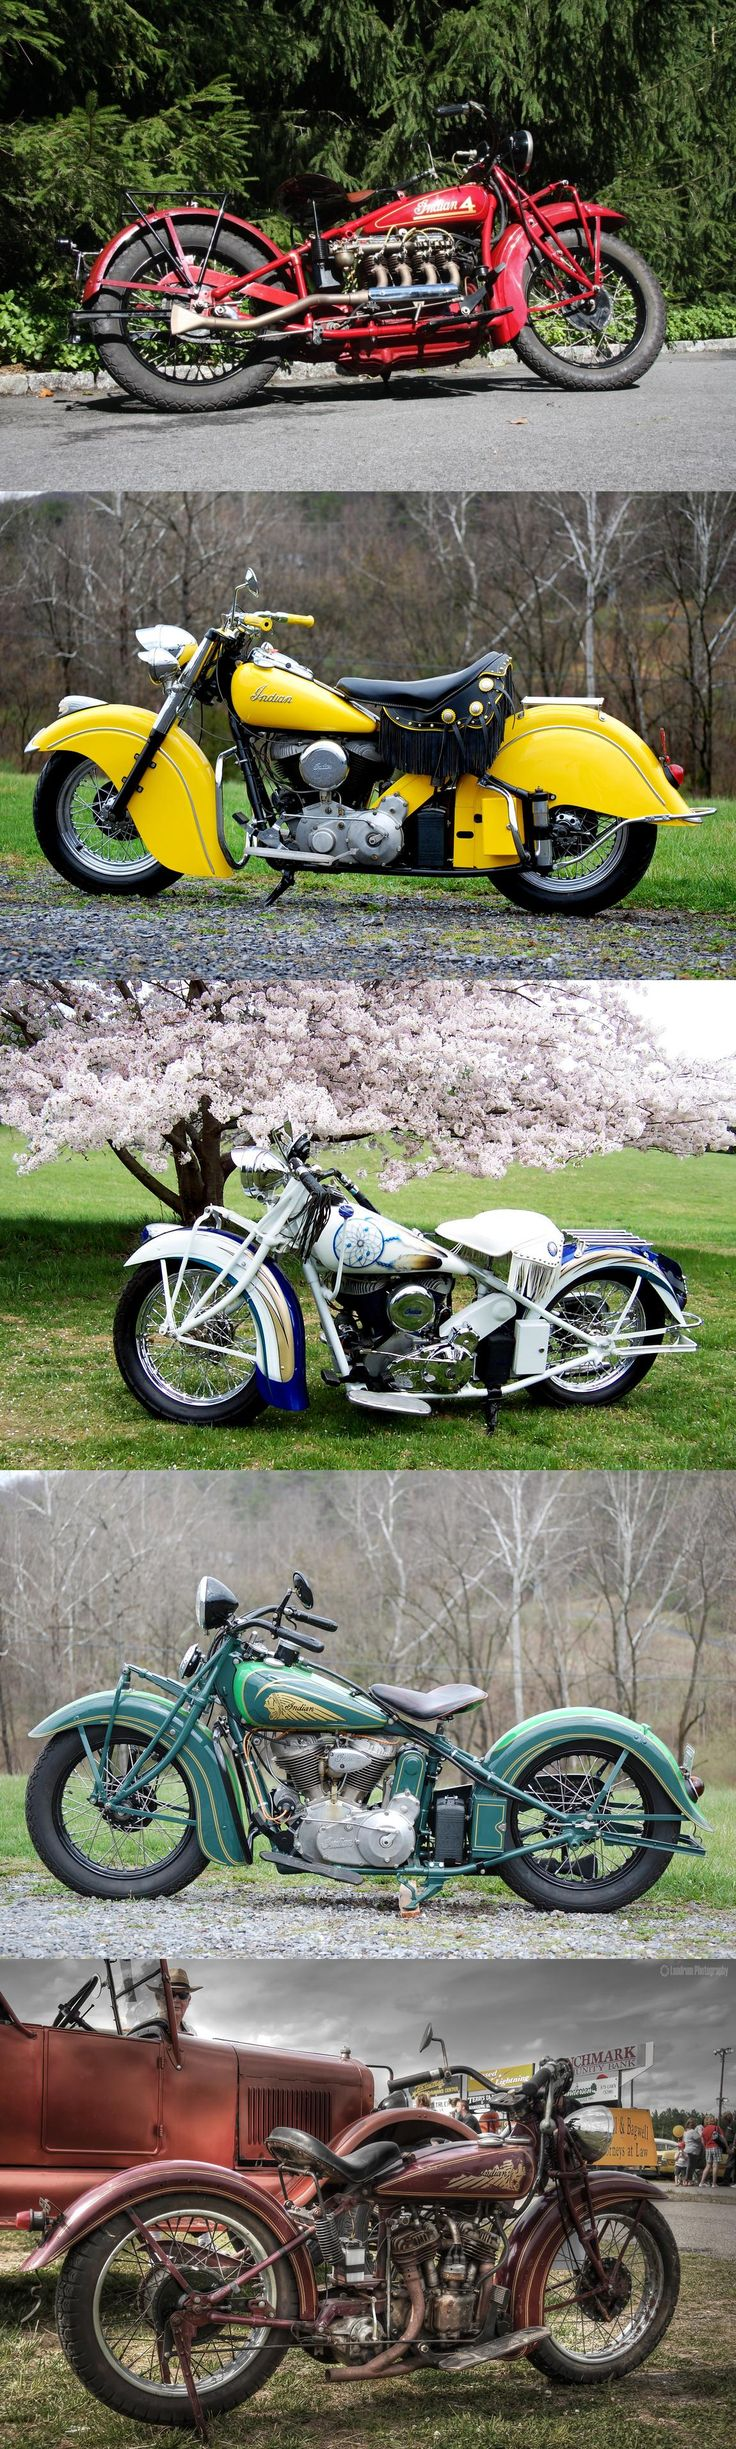 Old Indian Bike, 1930 indian four motorcycle